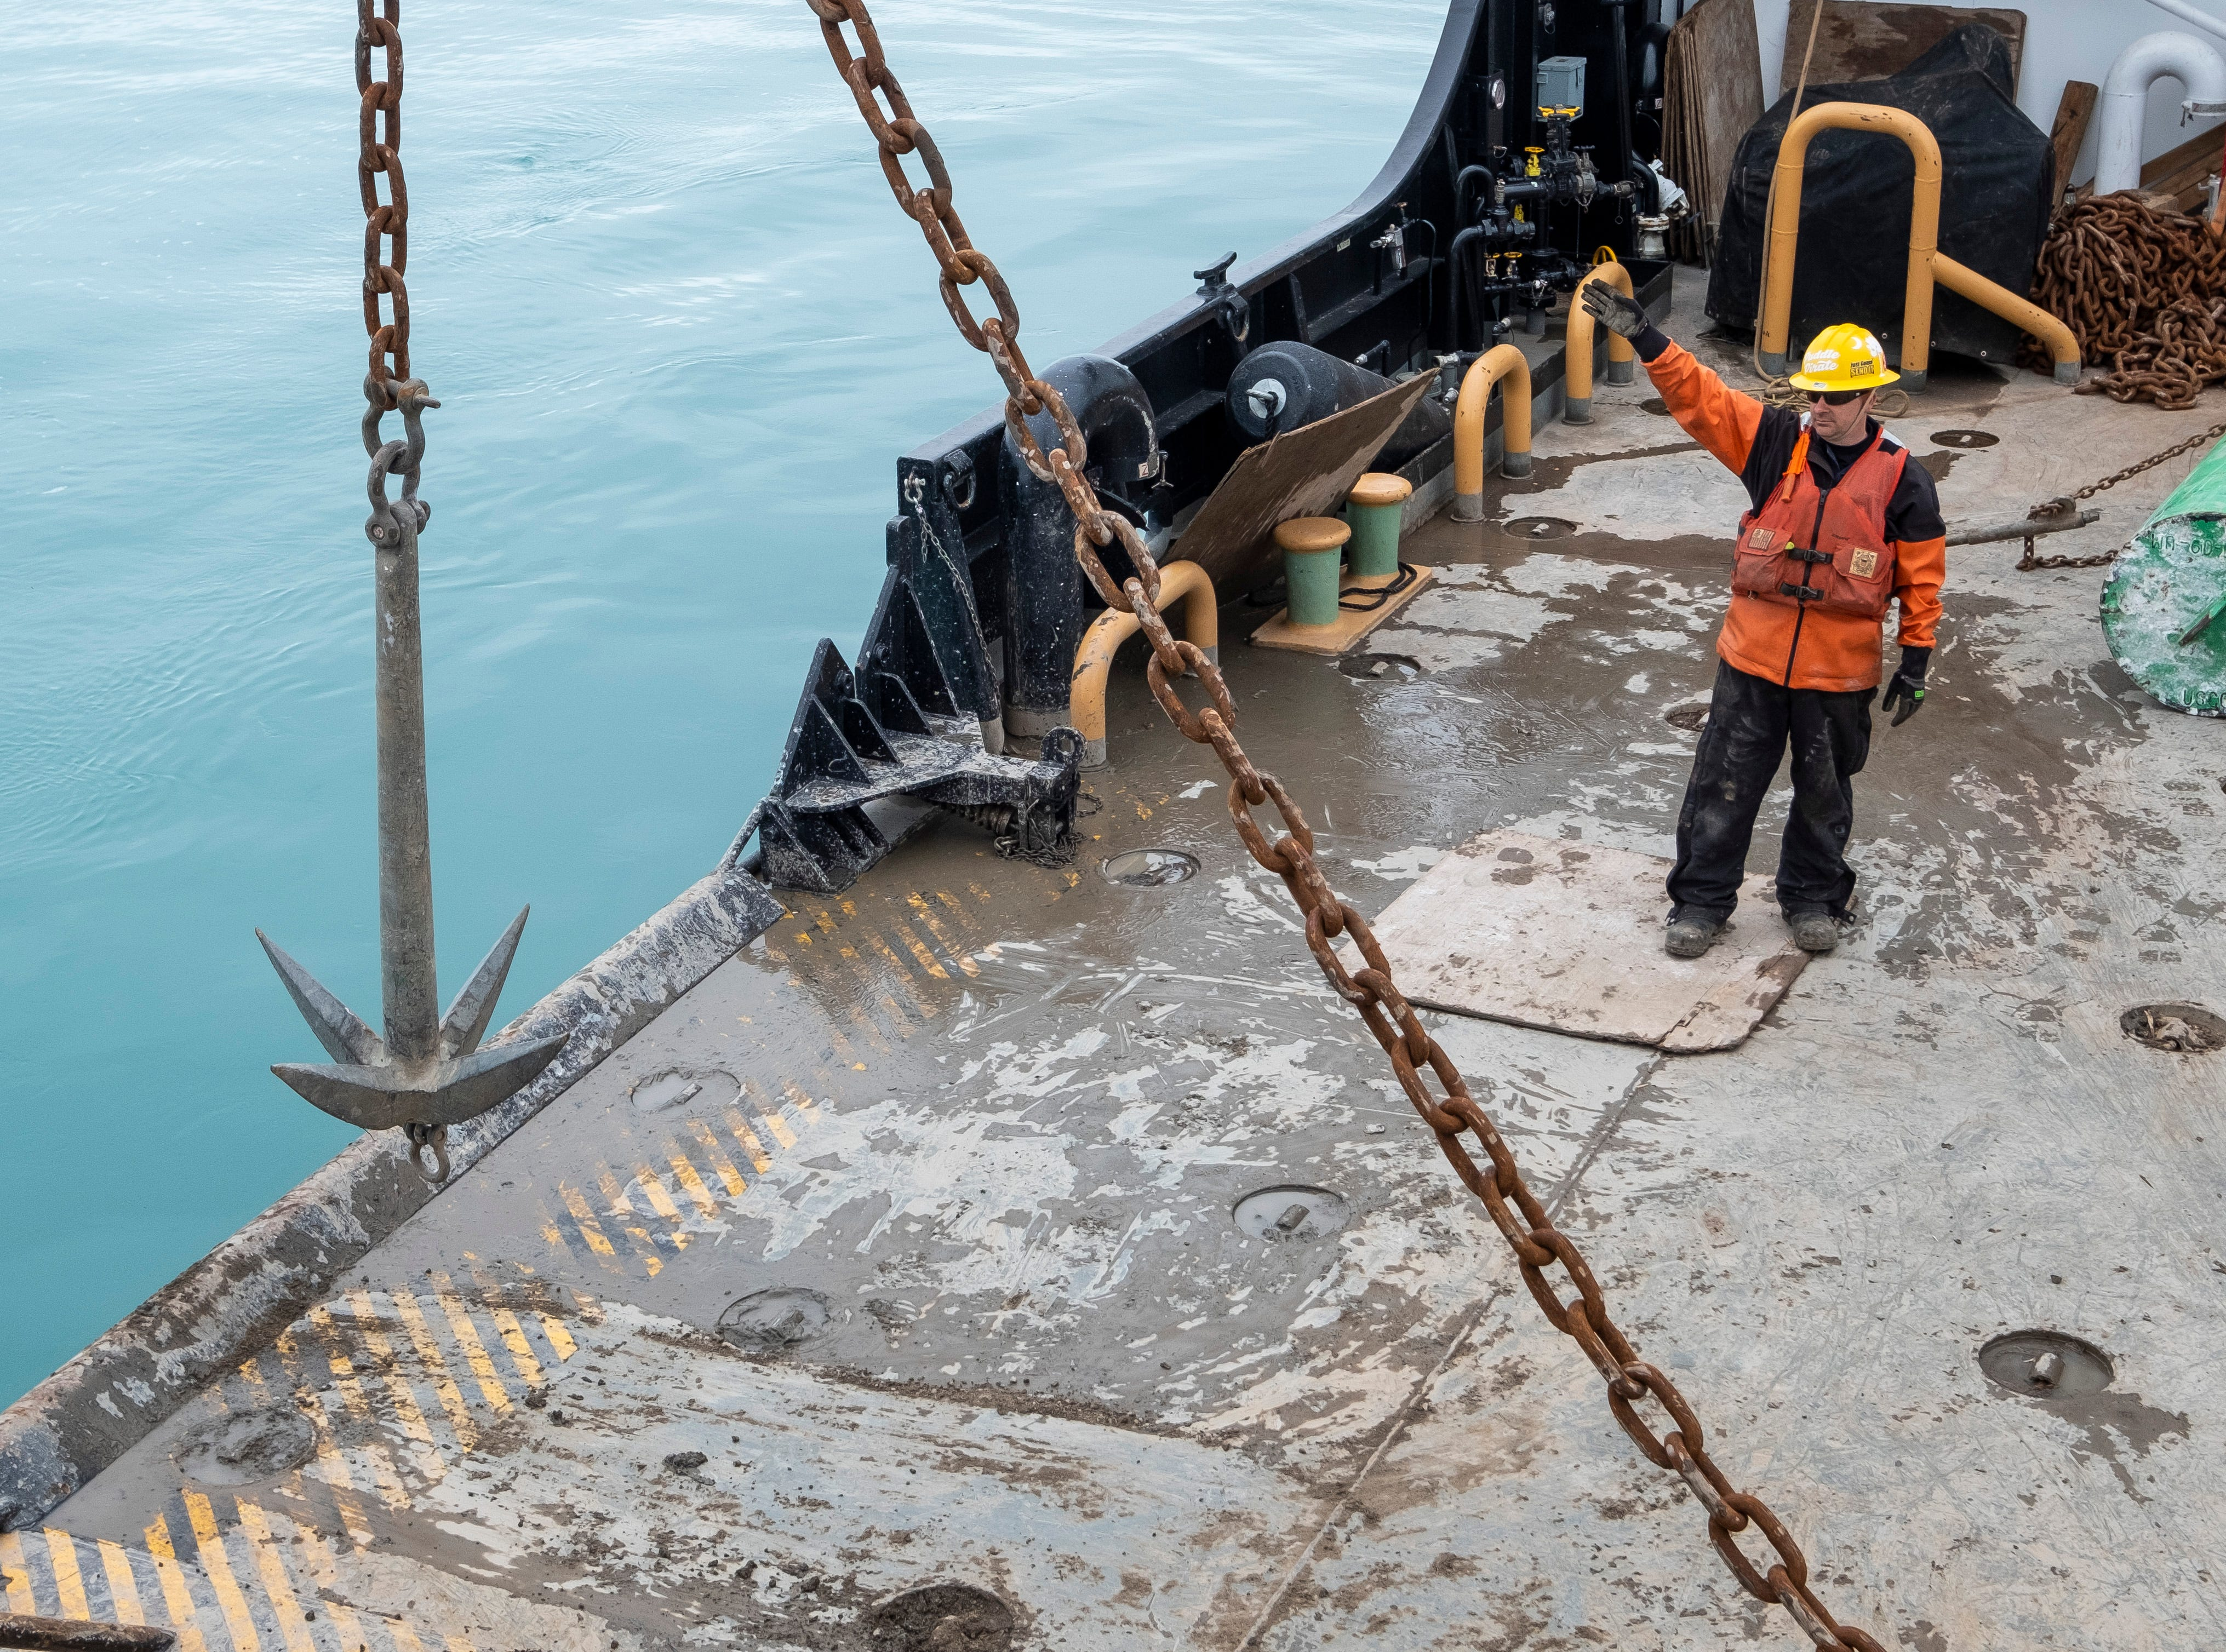 U.S. Coast Guard BMC Jeffrey Rogers motions ot the Hollyhock's crane operator as a grapple is moved over the side of the buoy deck Thursday, April 25, 2019. One of the buoys the crew was scheduled to swap had gone missing over the winter. The grapple would bounce along the bottom of the lake to attempt to find the stone, buoy or chain so it could be removed. If a new buoy was set on top of it, the chains could become twisted or other problems could be caused.